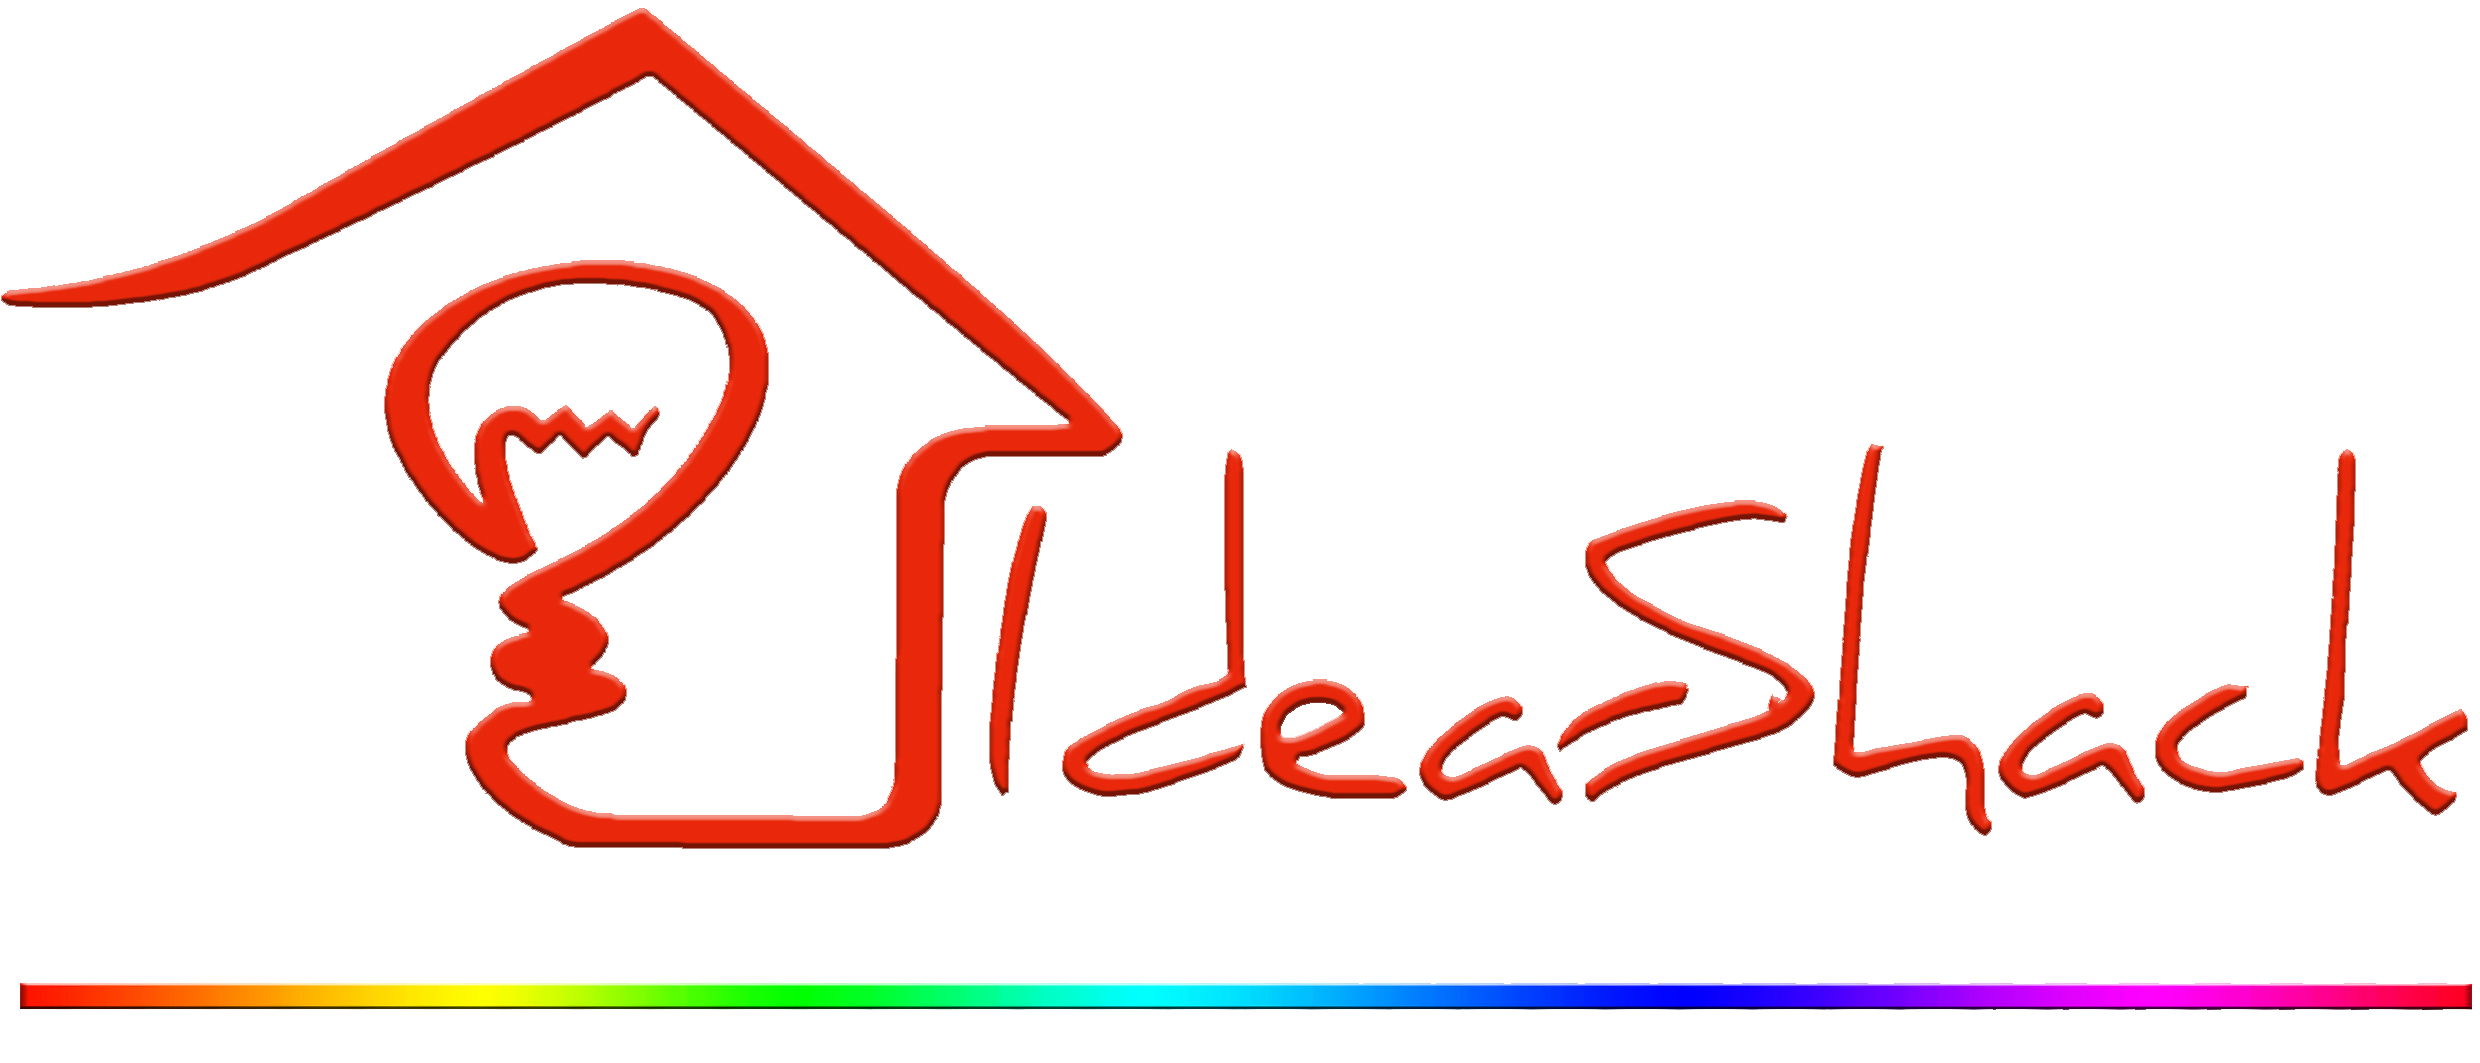 Idea-Shack Logo With Rainbow Line